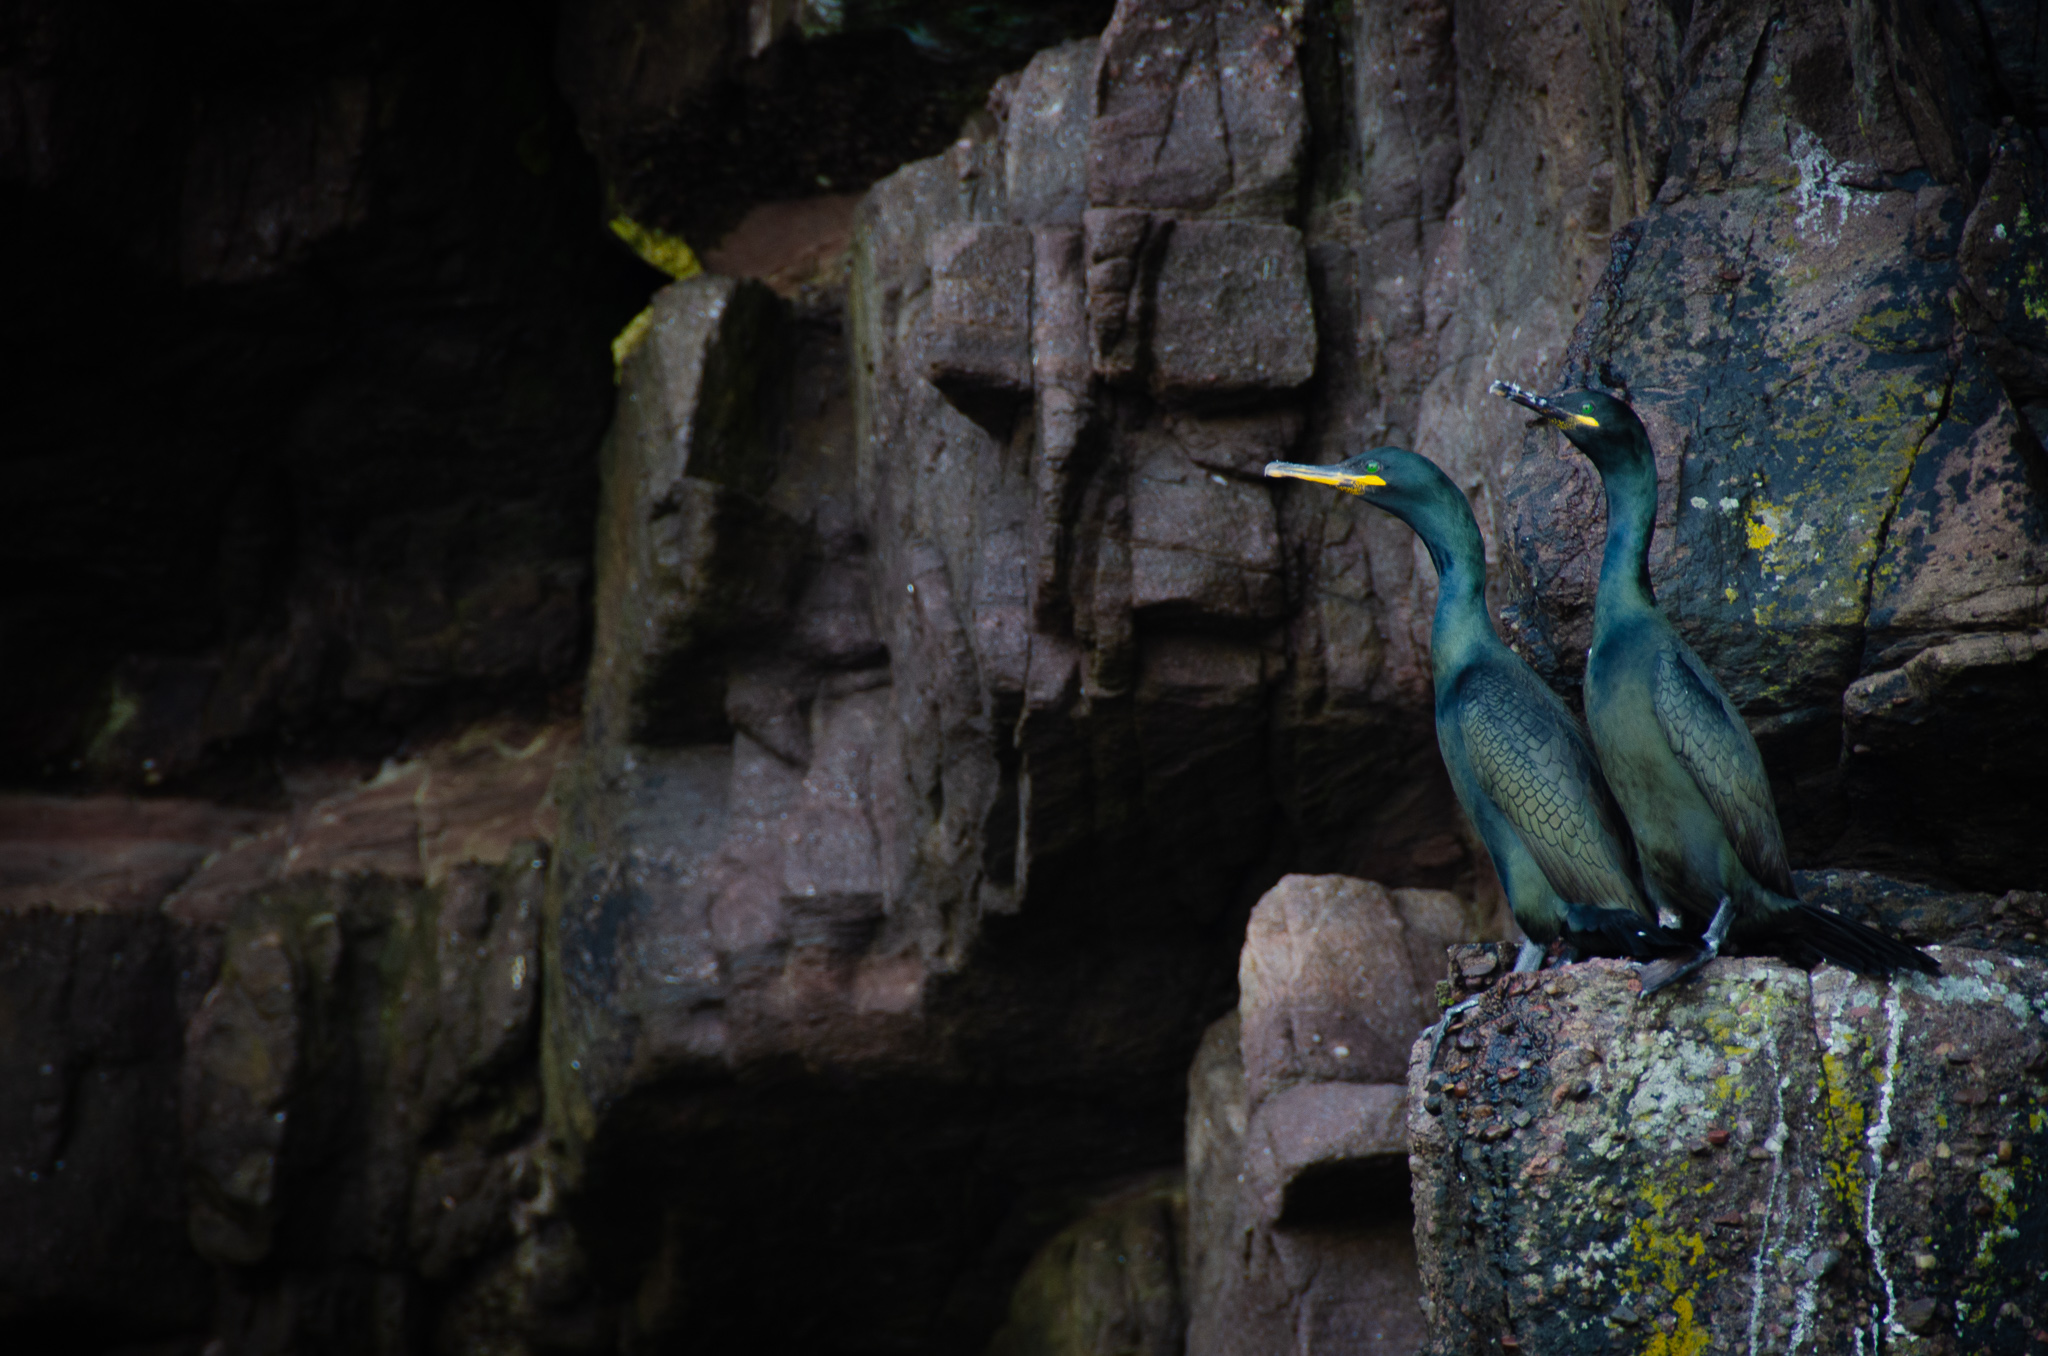 Cormorants- here you can really appreciate the stunning metallic green sheen of their feathers in the light.